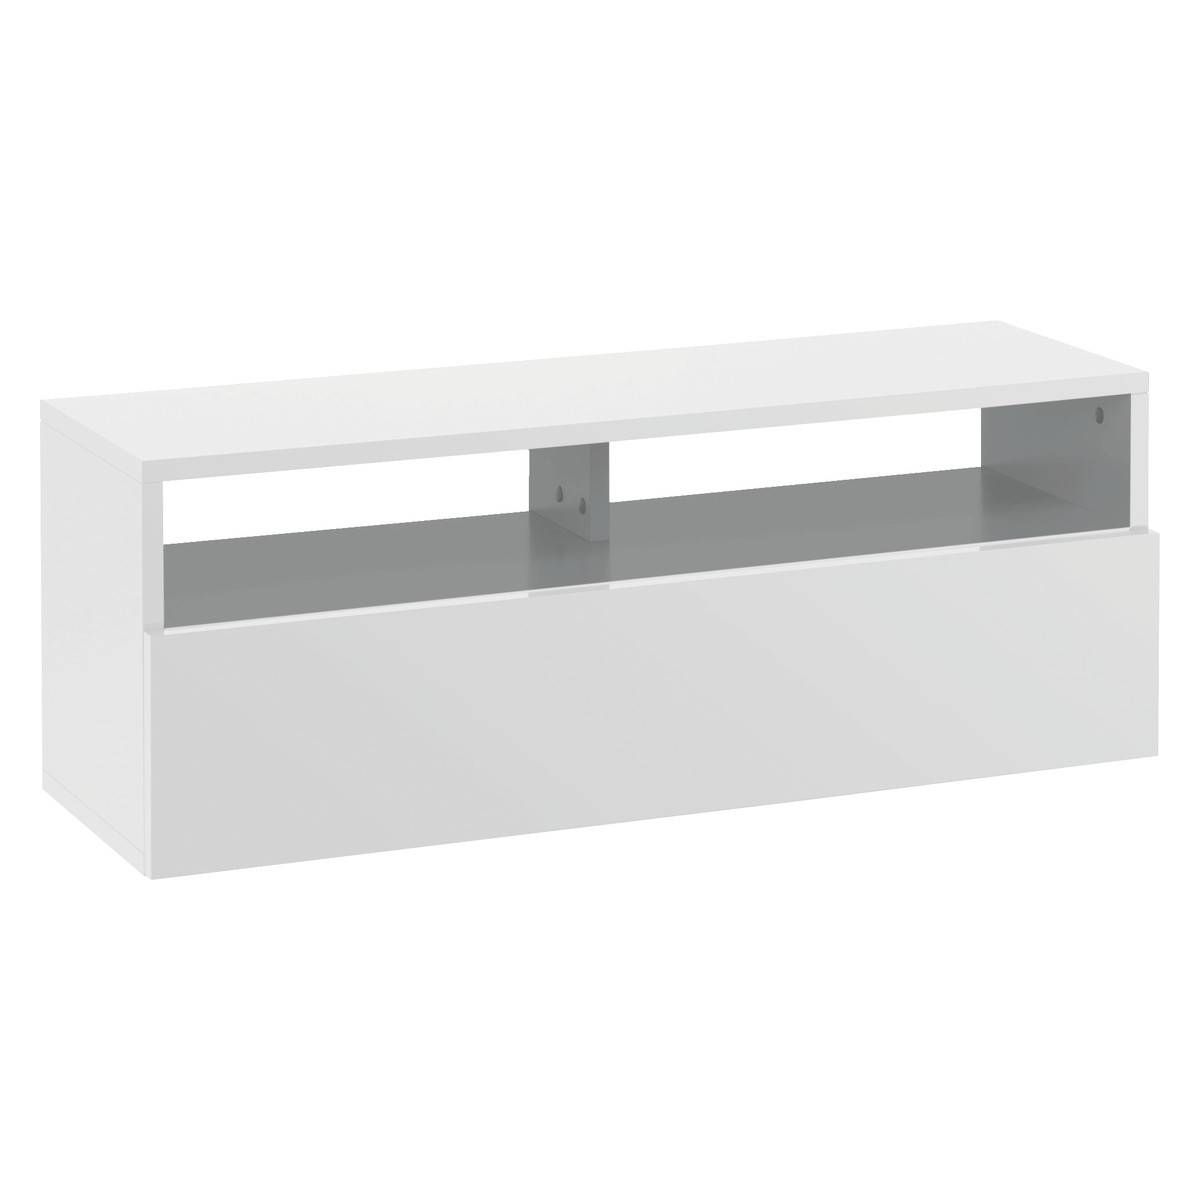 Tv Units - Our Pick Of The Best | Ideal Home inside White High Gloss Corner Tv Unit (Image 12 of 15)